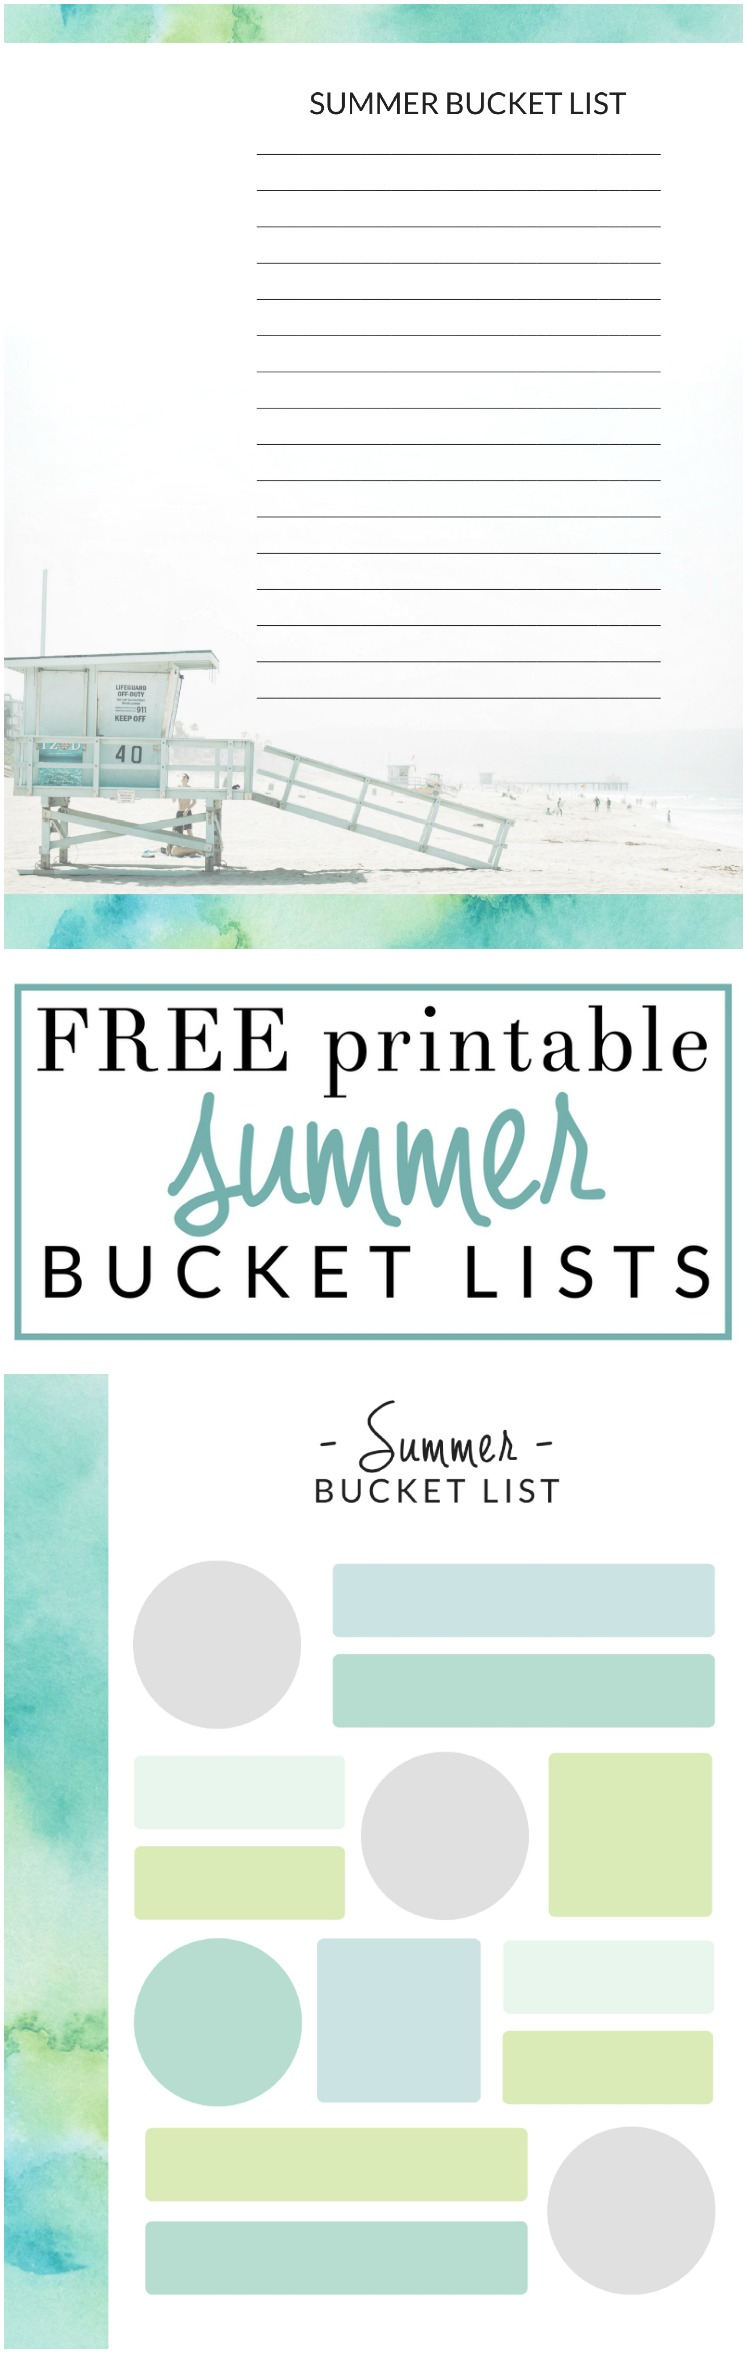 Summer To Do List - FREE Bucket List Printables - The Crazy Craft Lady